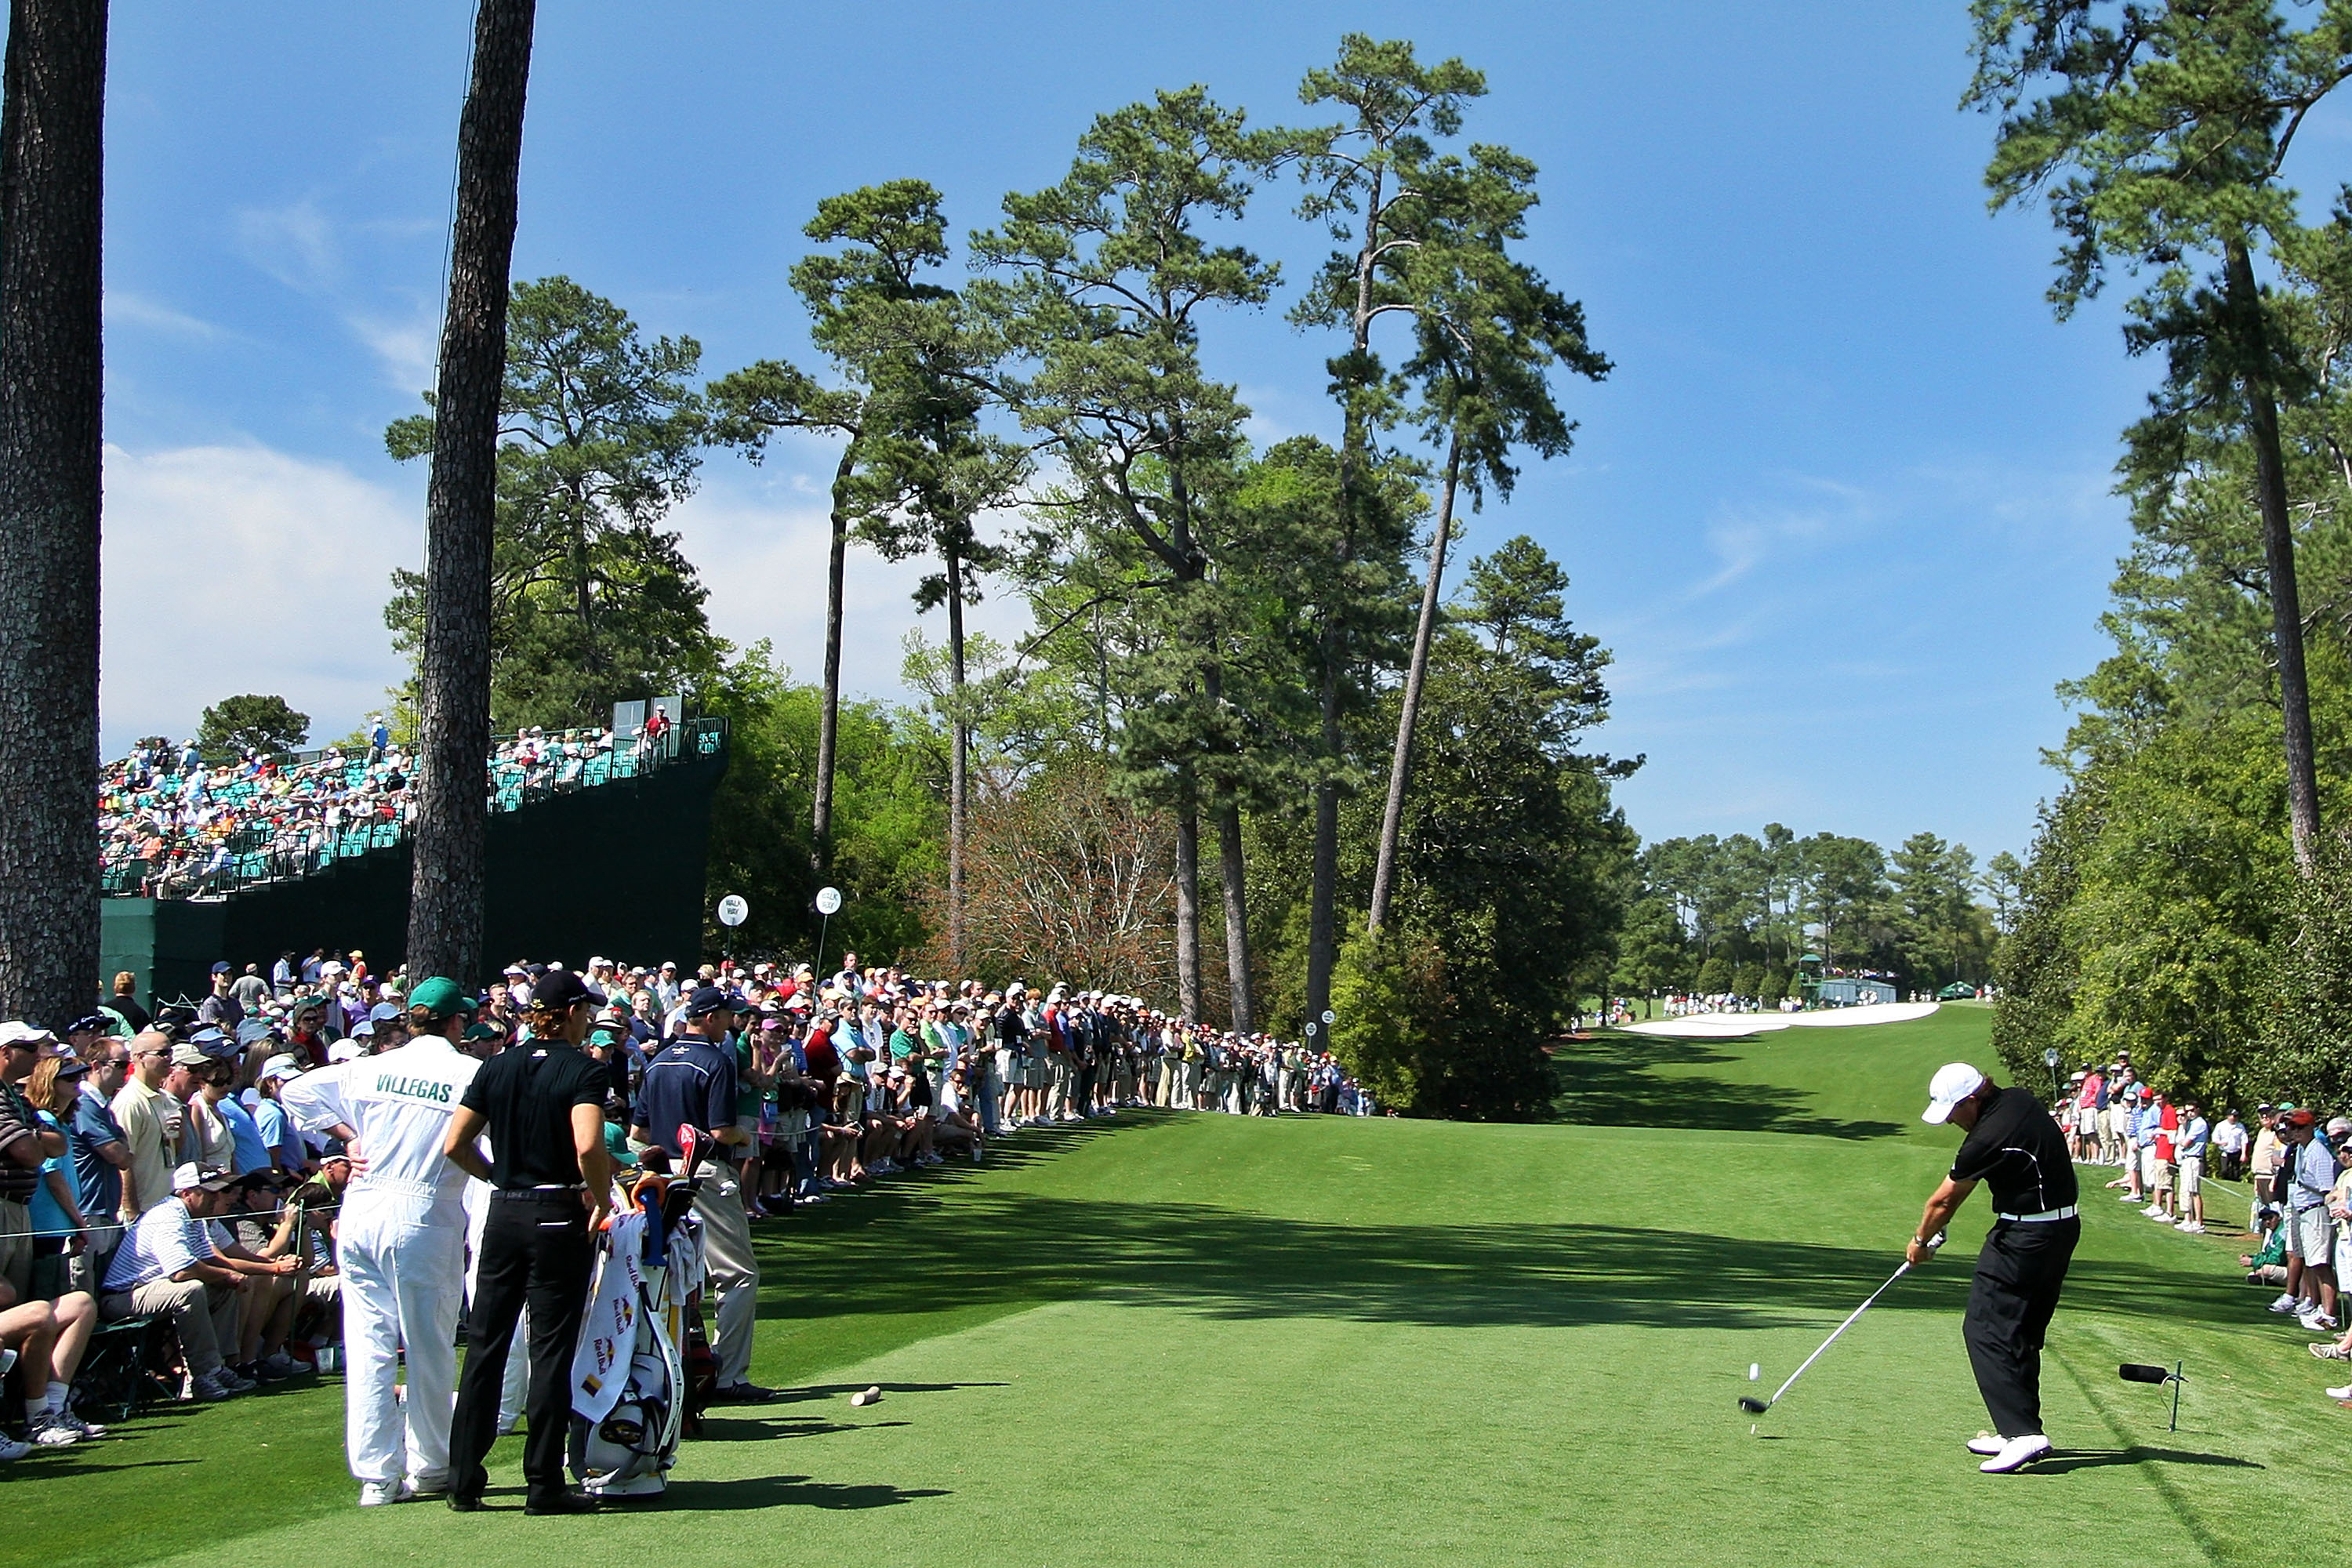 Phil Mickelson hits his tee shot on the 18th hole during the first round of the 2009 Masters.